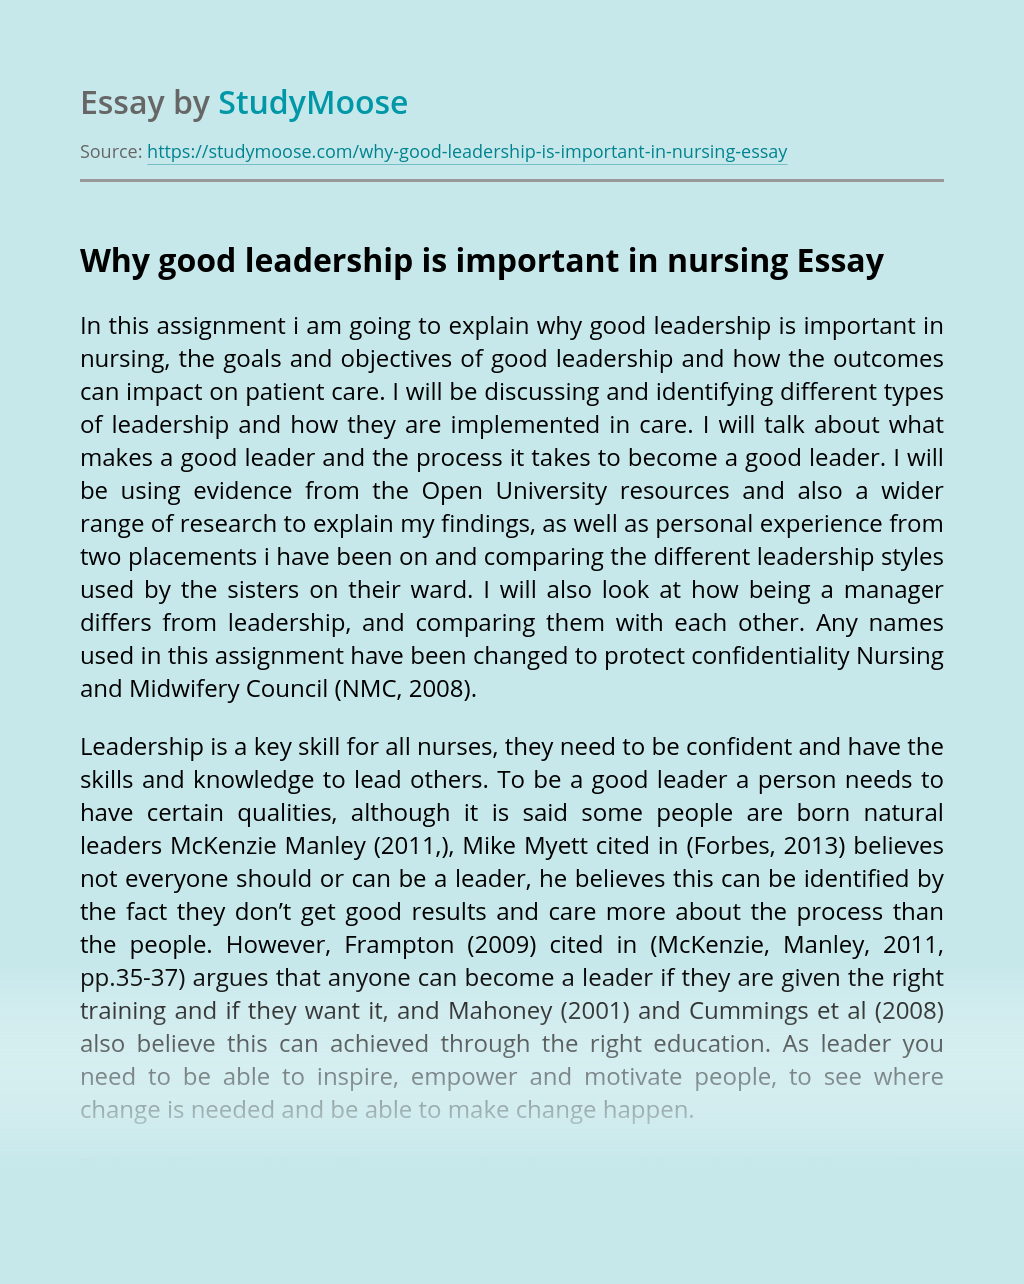 Why good leadership is important in nursing